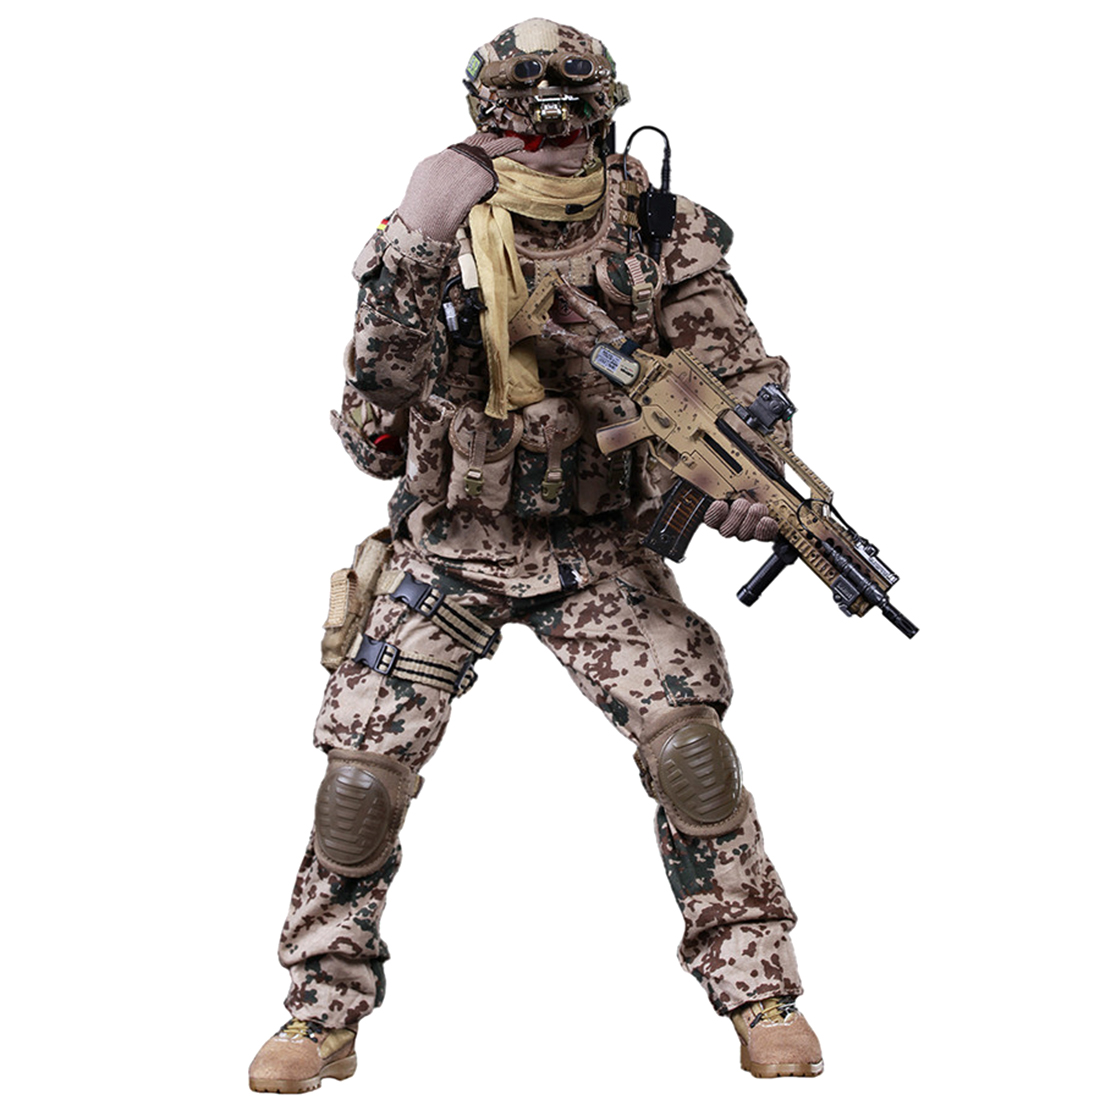 3 Types 1/6 Scale FLAGSET Male Movable Soilder Action Figure Toys 12 Collectable Military Soldier Model Set for Birthday Gift3 Types 1/6 Scale FLAGSET Male Movable Soilder Action Figure Toys 12 Collectable Military Soldier Model Set for Birthday Gift